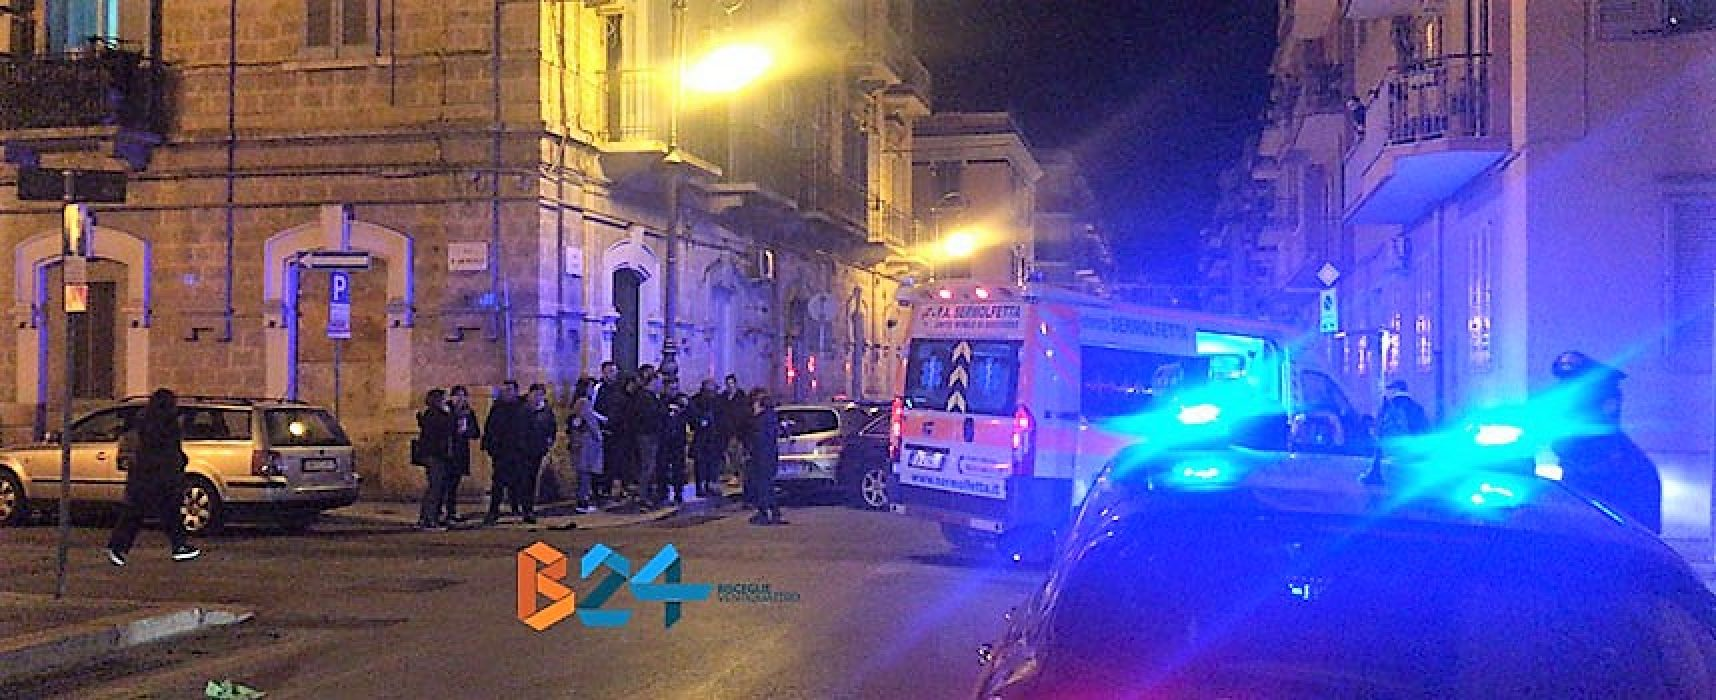 Incidente in via Piave, donna al pronto soccorso